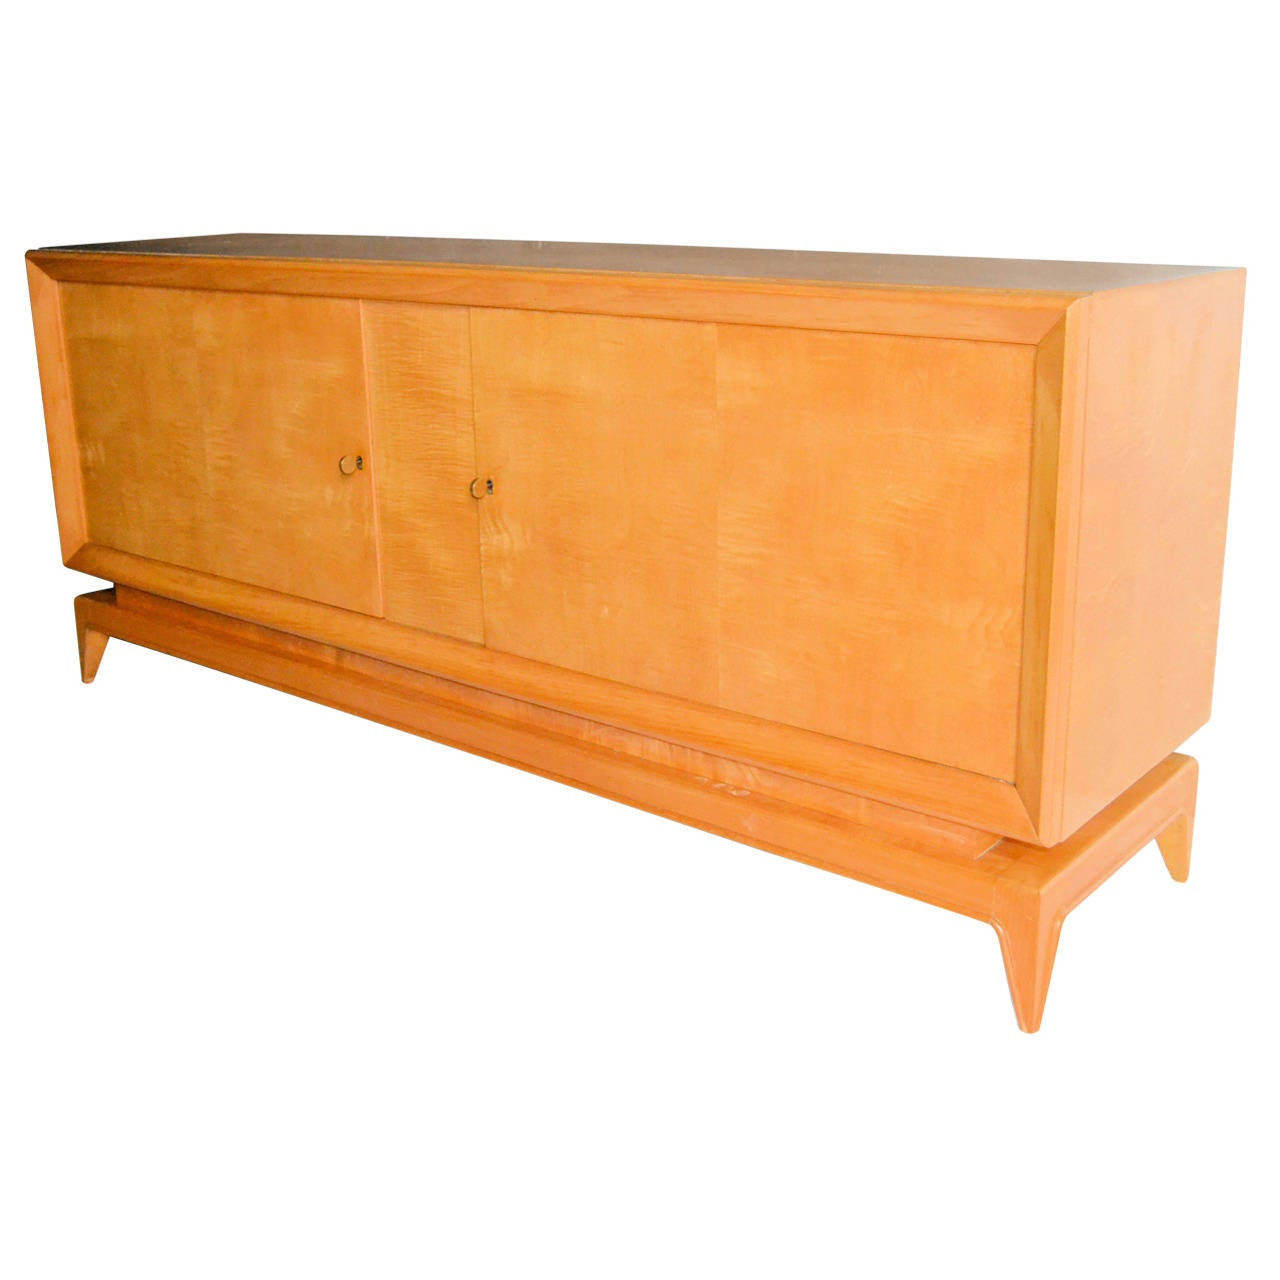 1940s sycamore french sideboard at 1stdibs for Sideboard 2 50 m